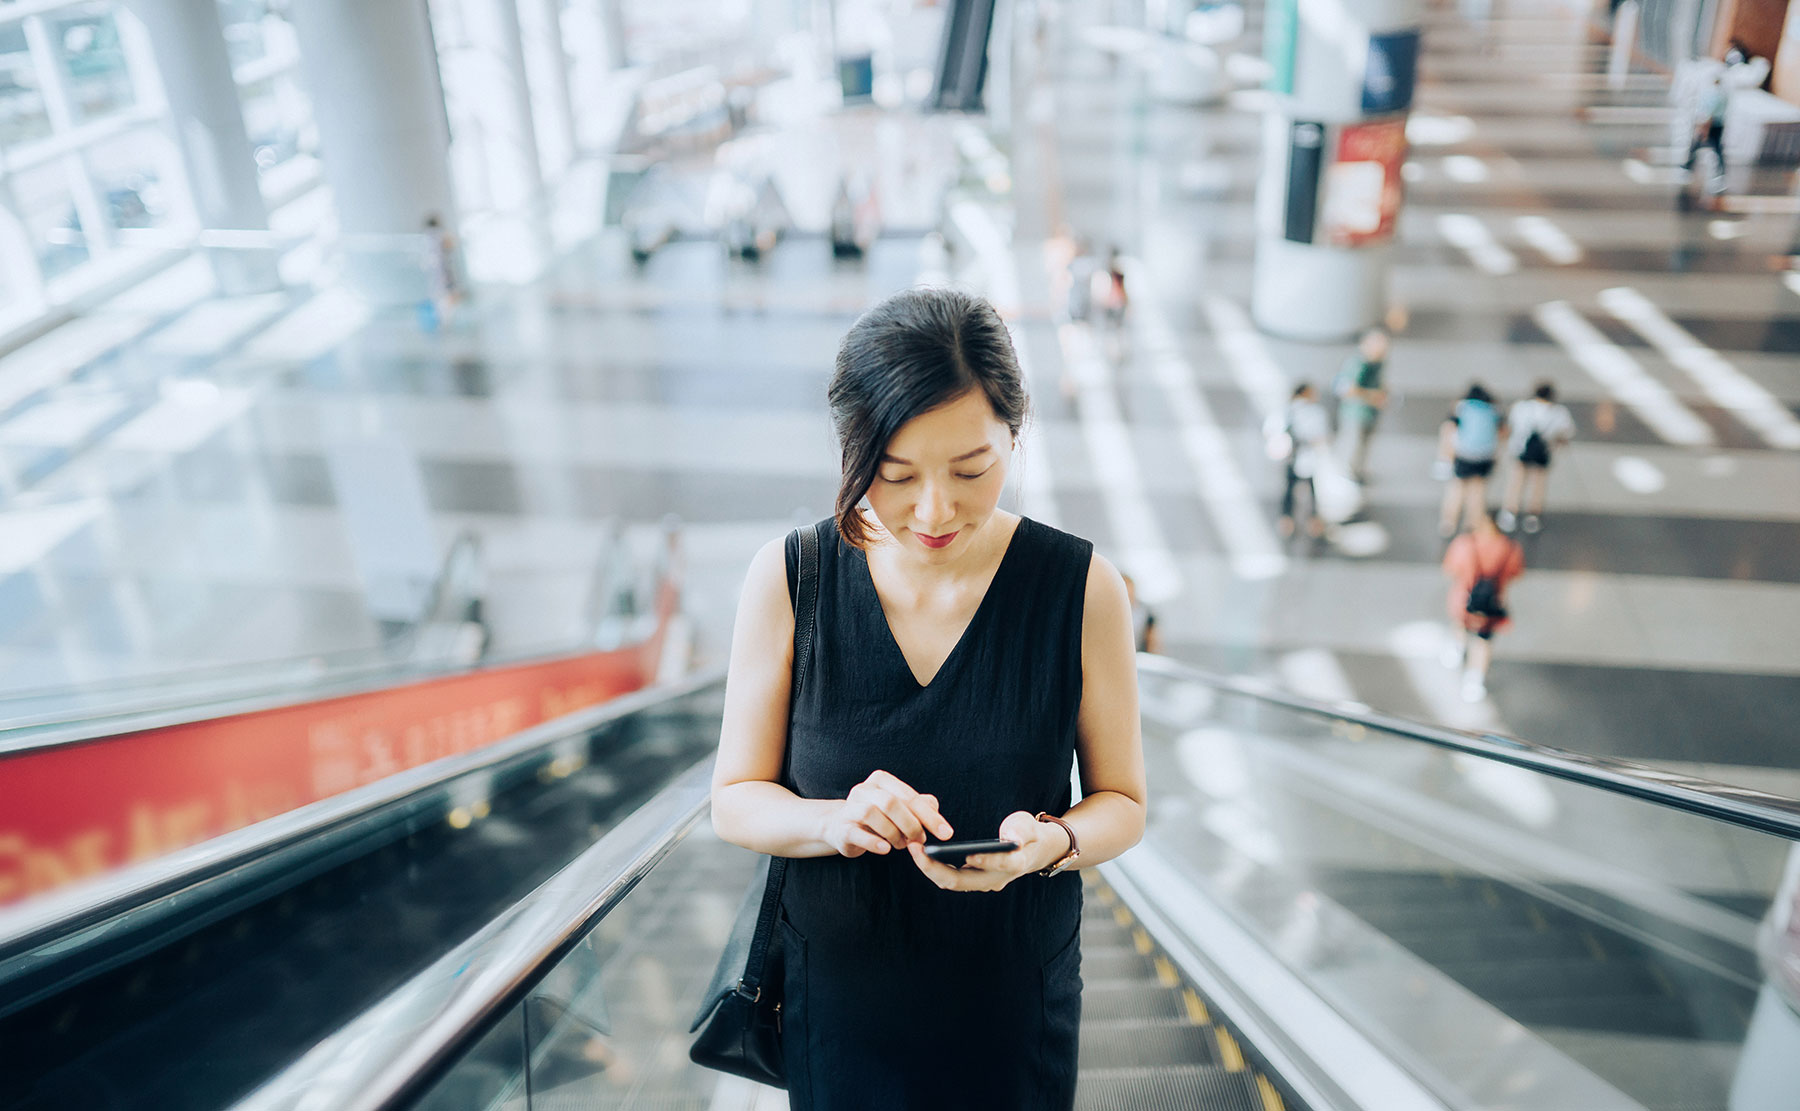 Woman using smartphone on escalator